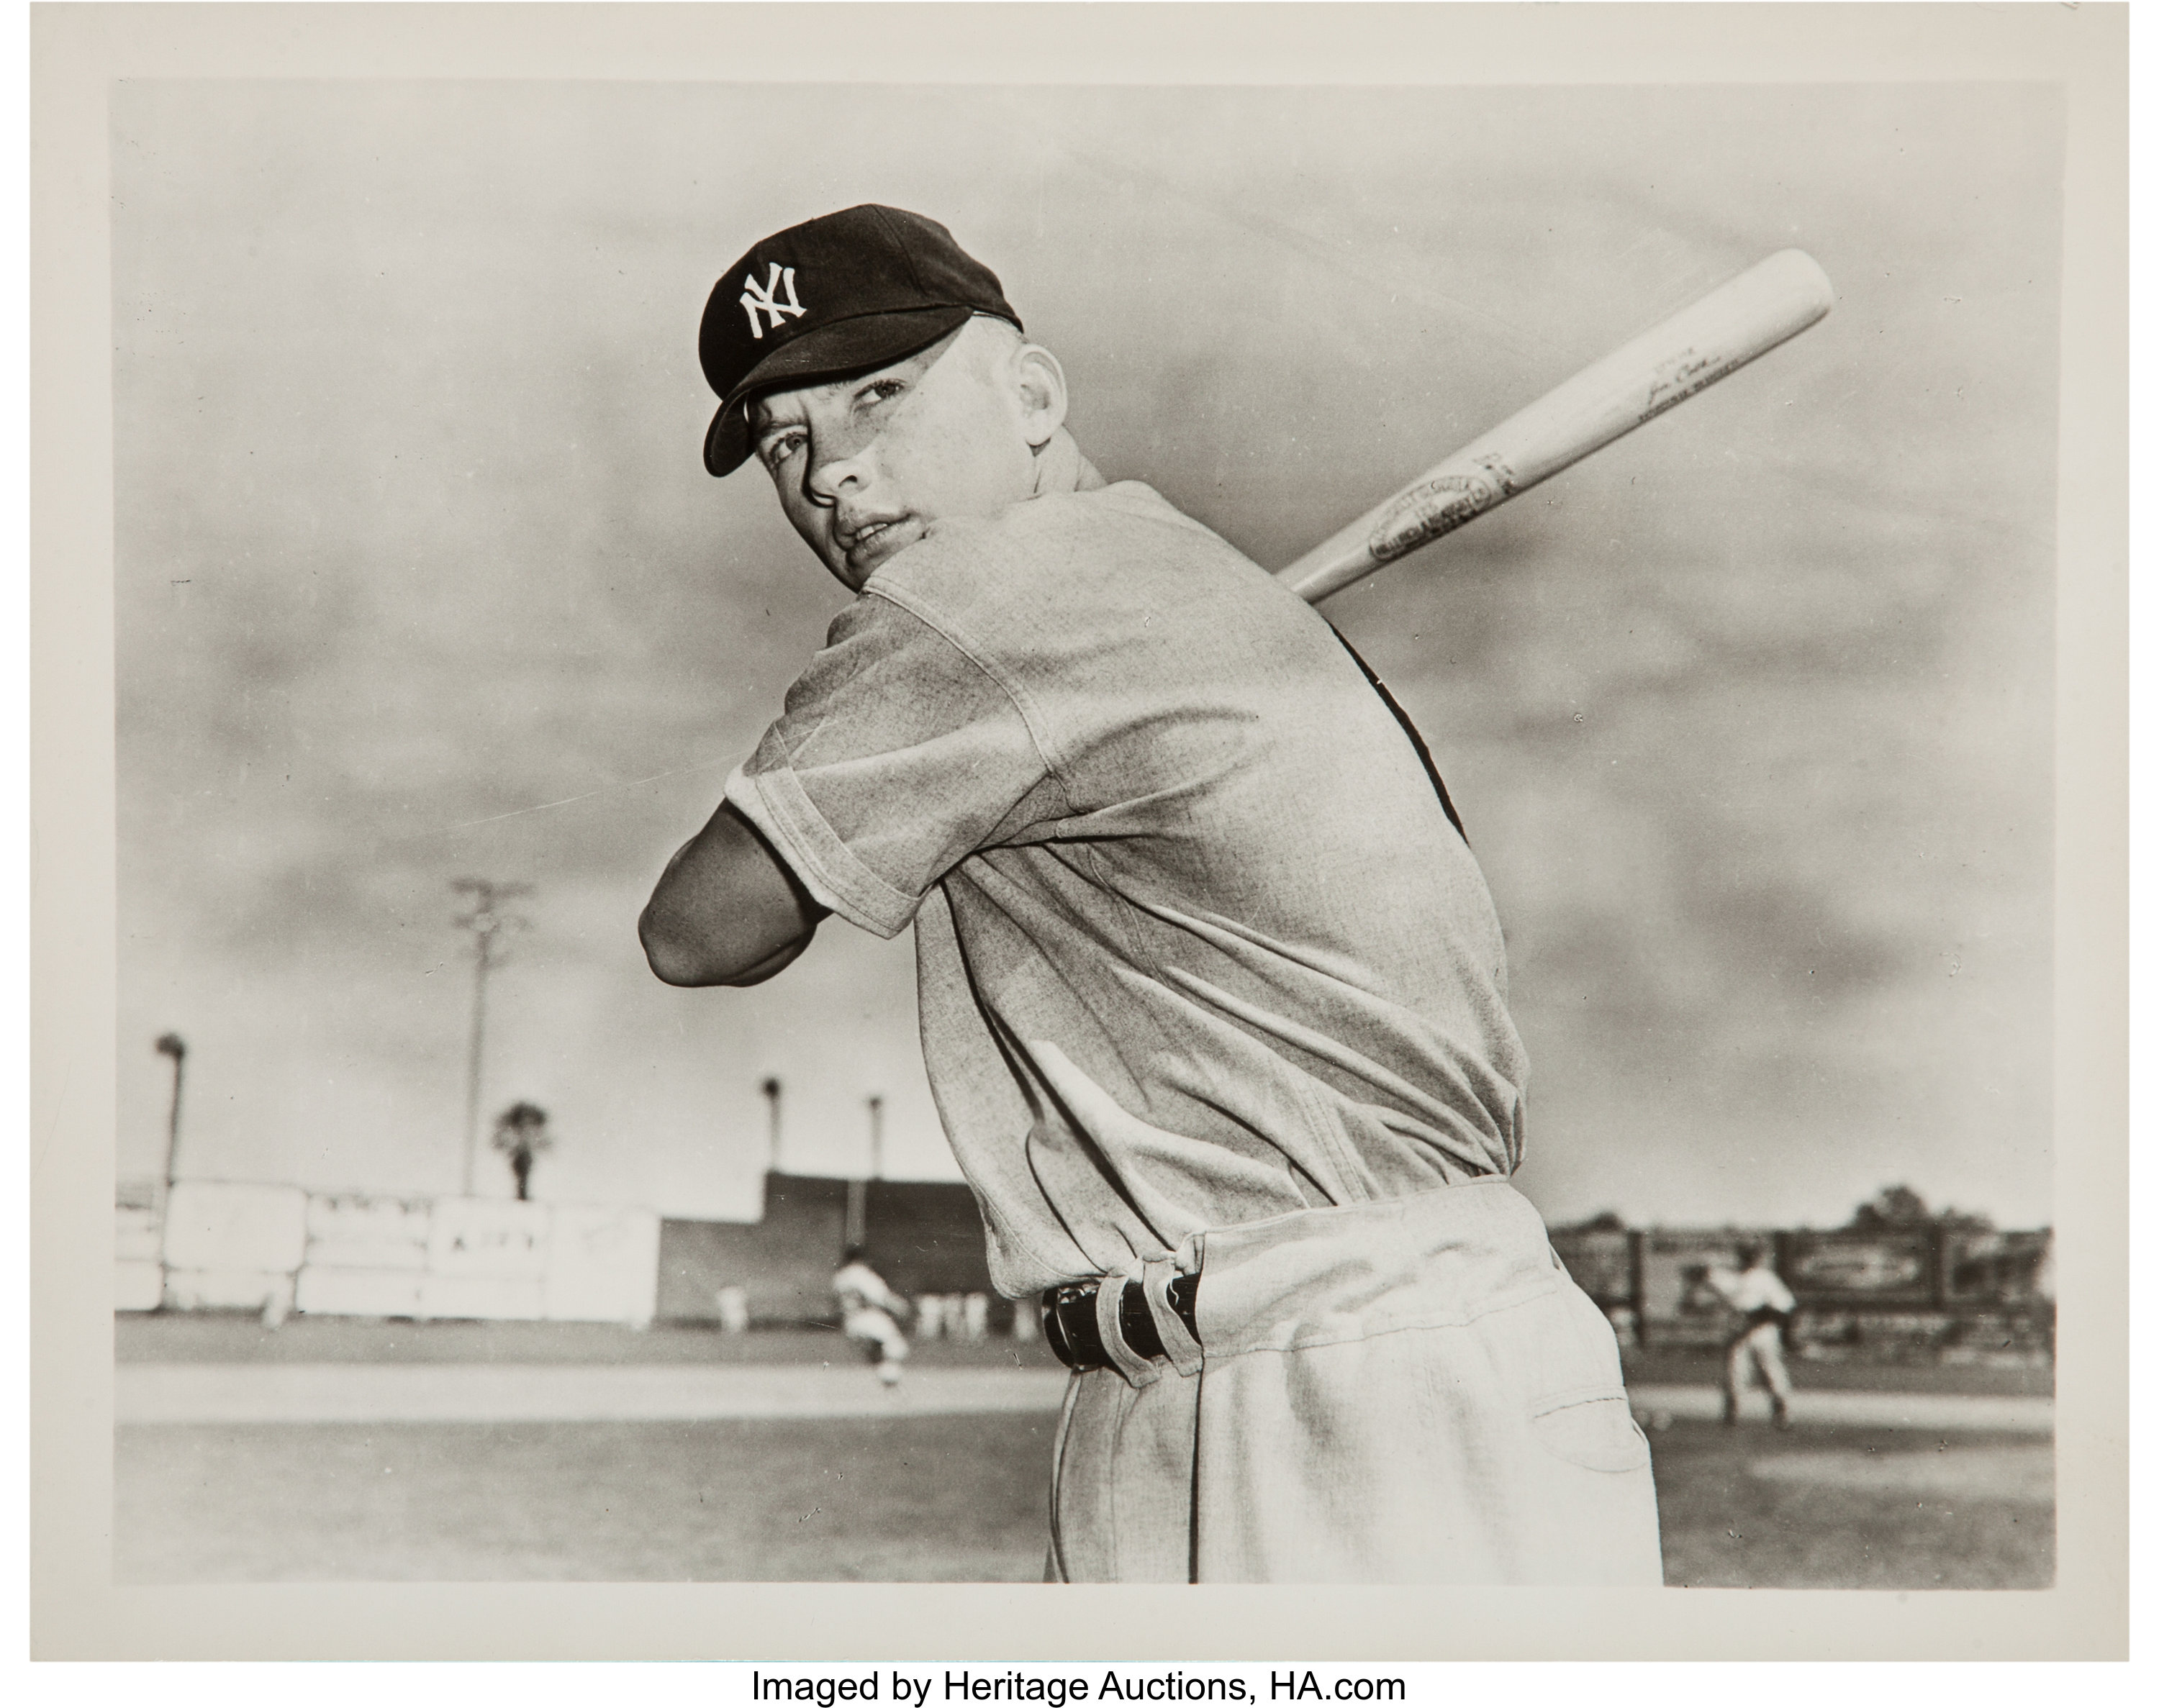 1951 Mickey Mantle Original News Photograph Used For 1951